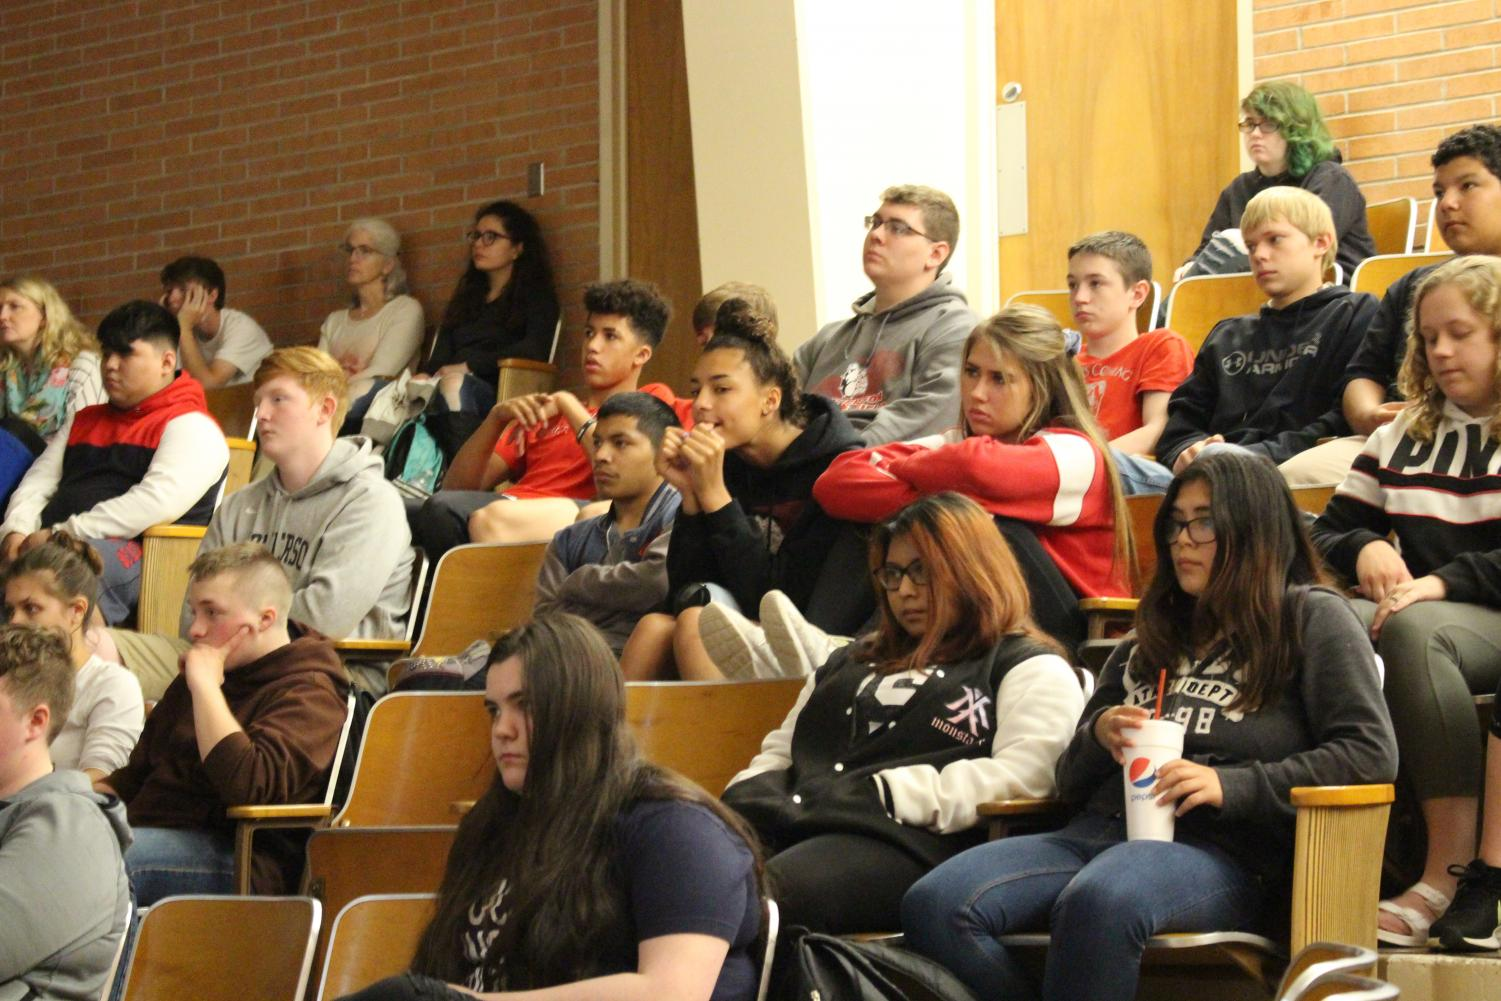 MHS+students+listening+to+the+Holocaust+survivor%27s+story+of+World+War+II.